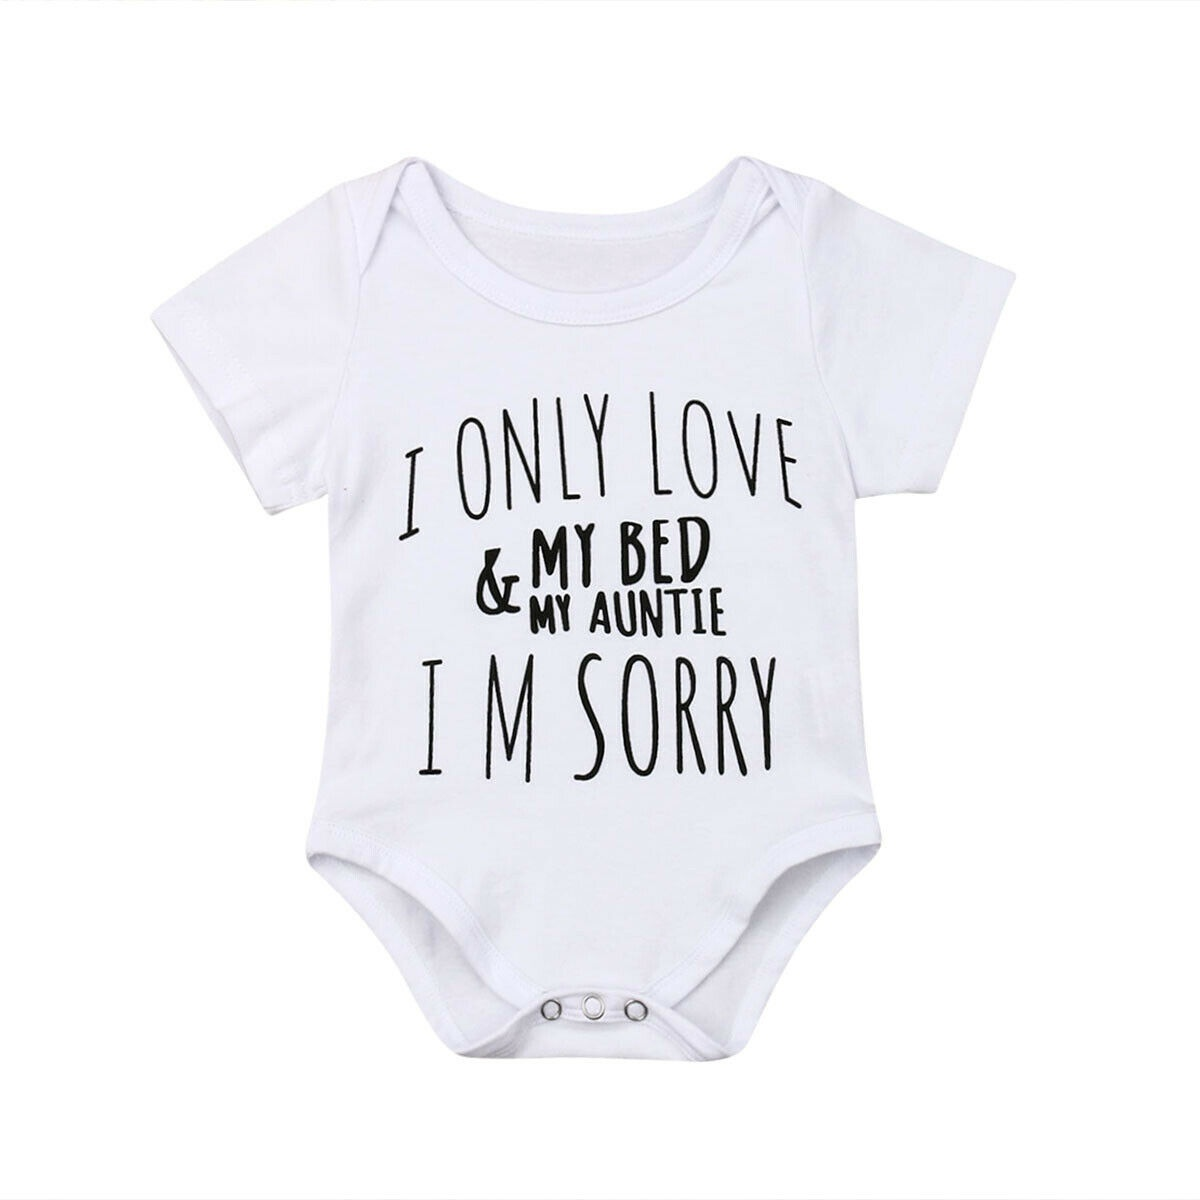 VinMea Baby Bodysuits Funny Short Sleeve Jumpsuit Clothes Outfits I Donut Care for Sweet Baby Girls /& Boys 0-18 Months